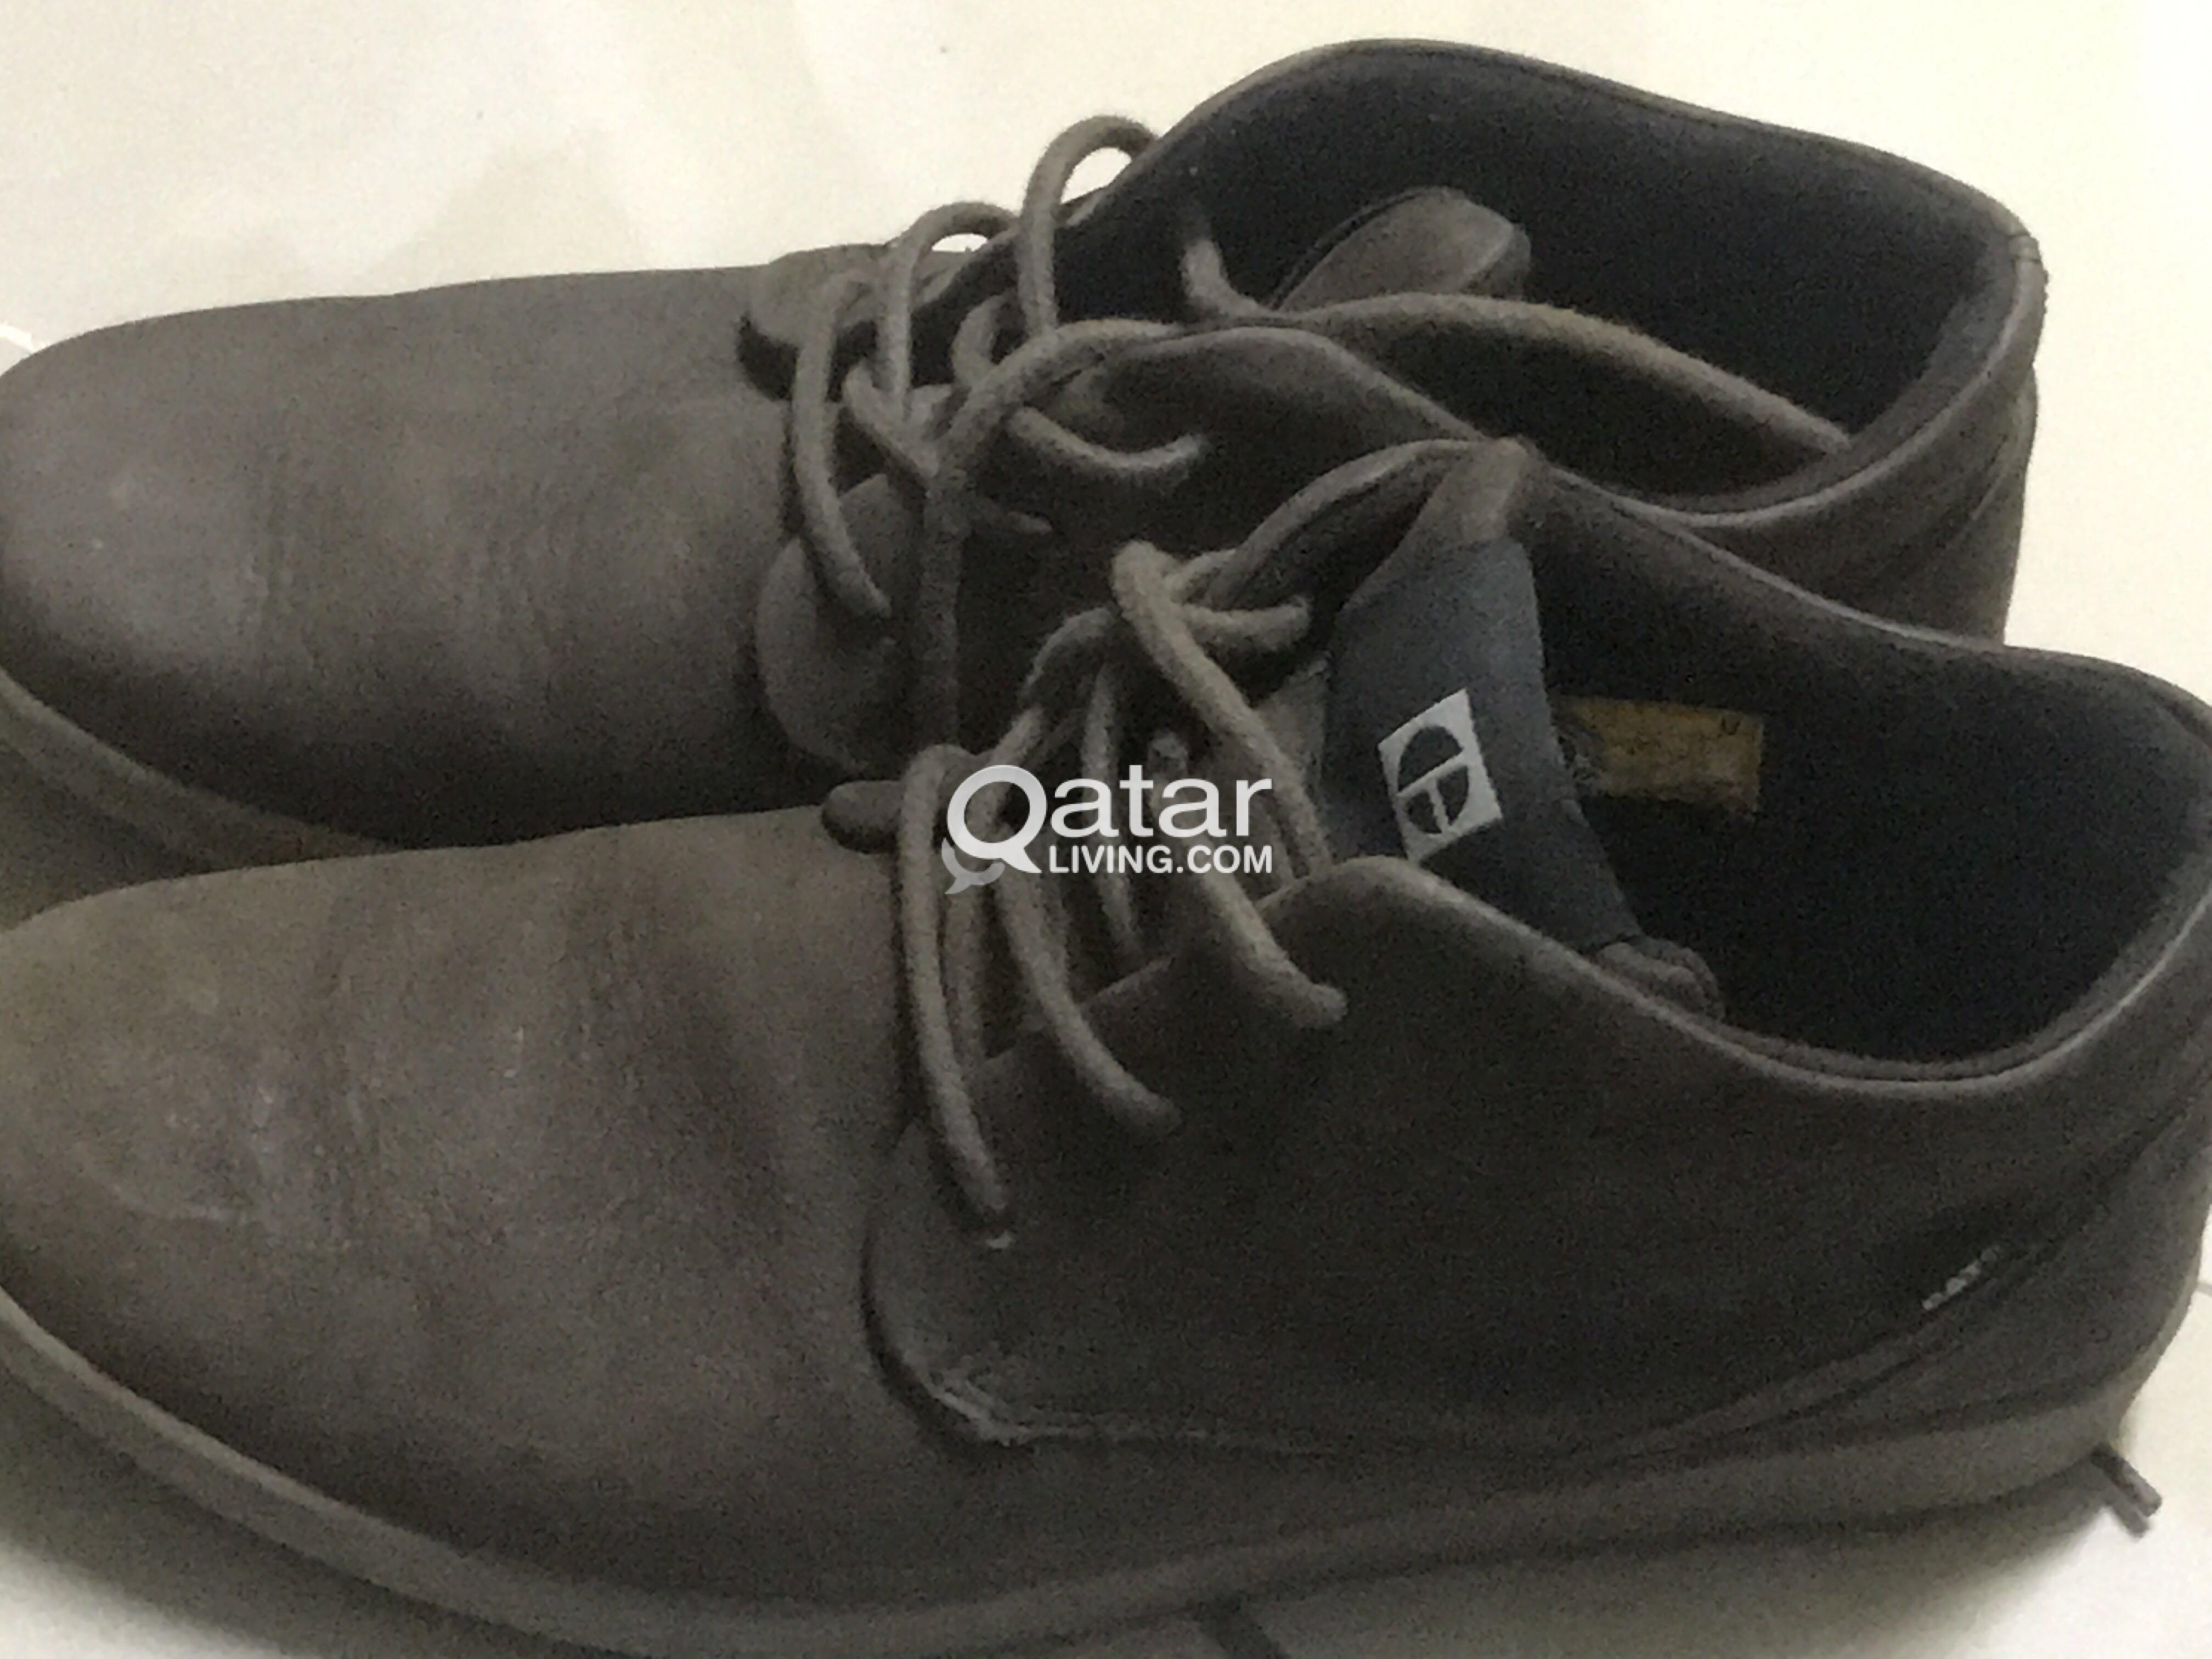 Original Cat Shoes Qatar Living